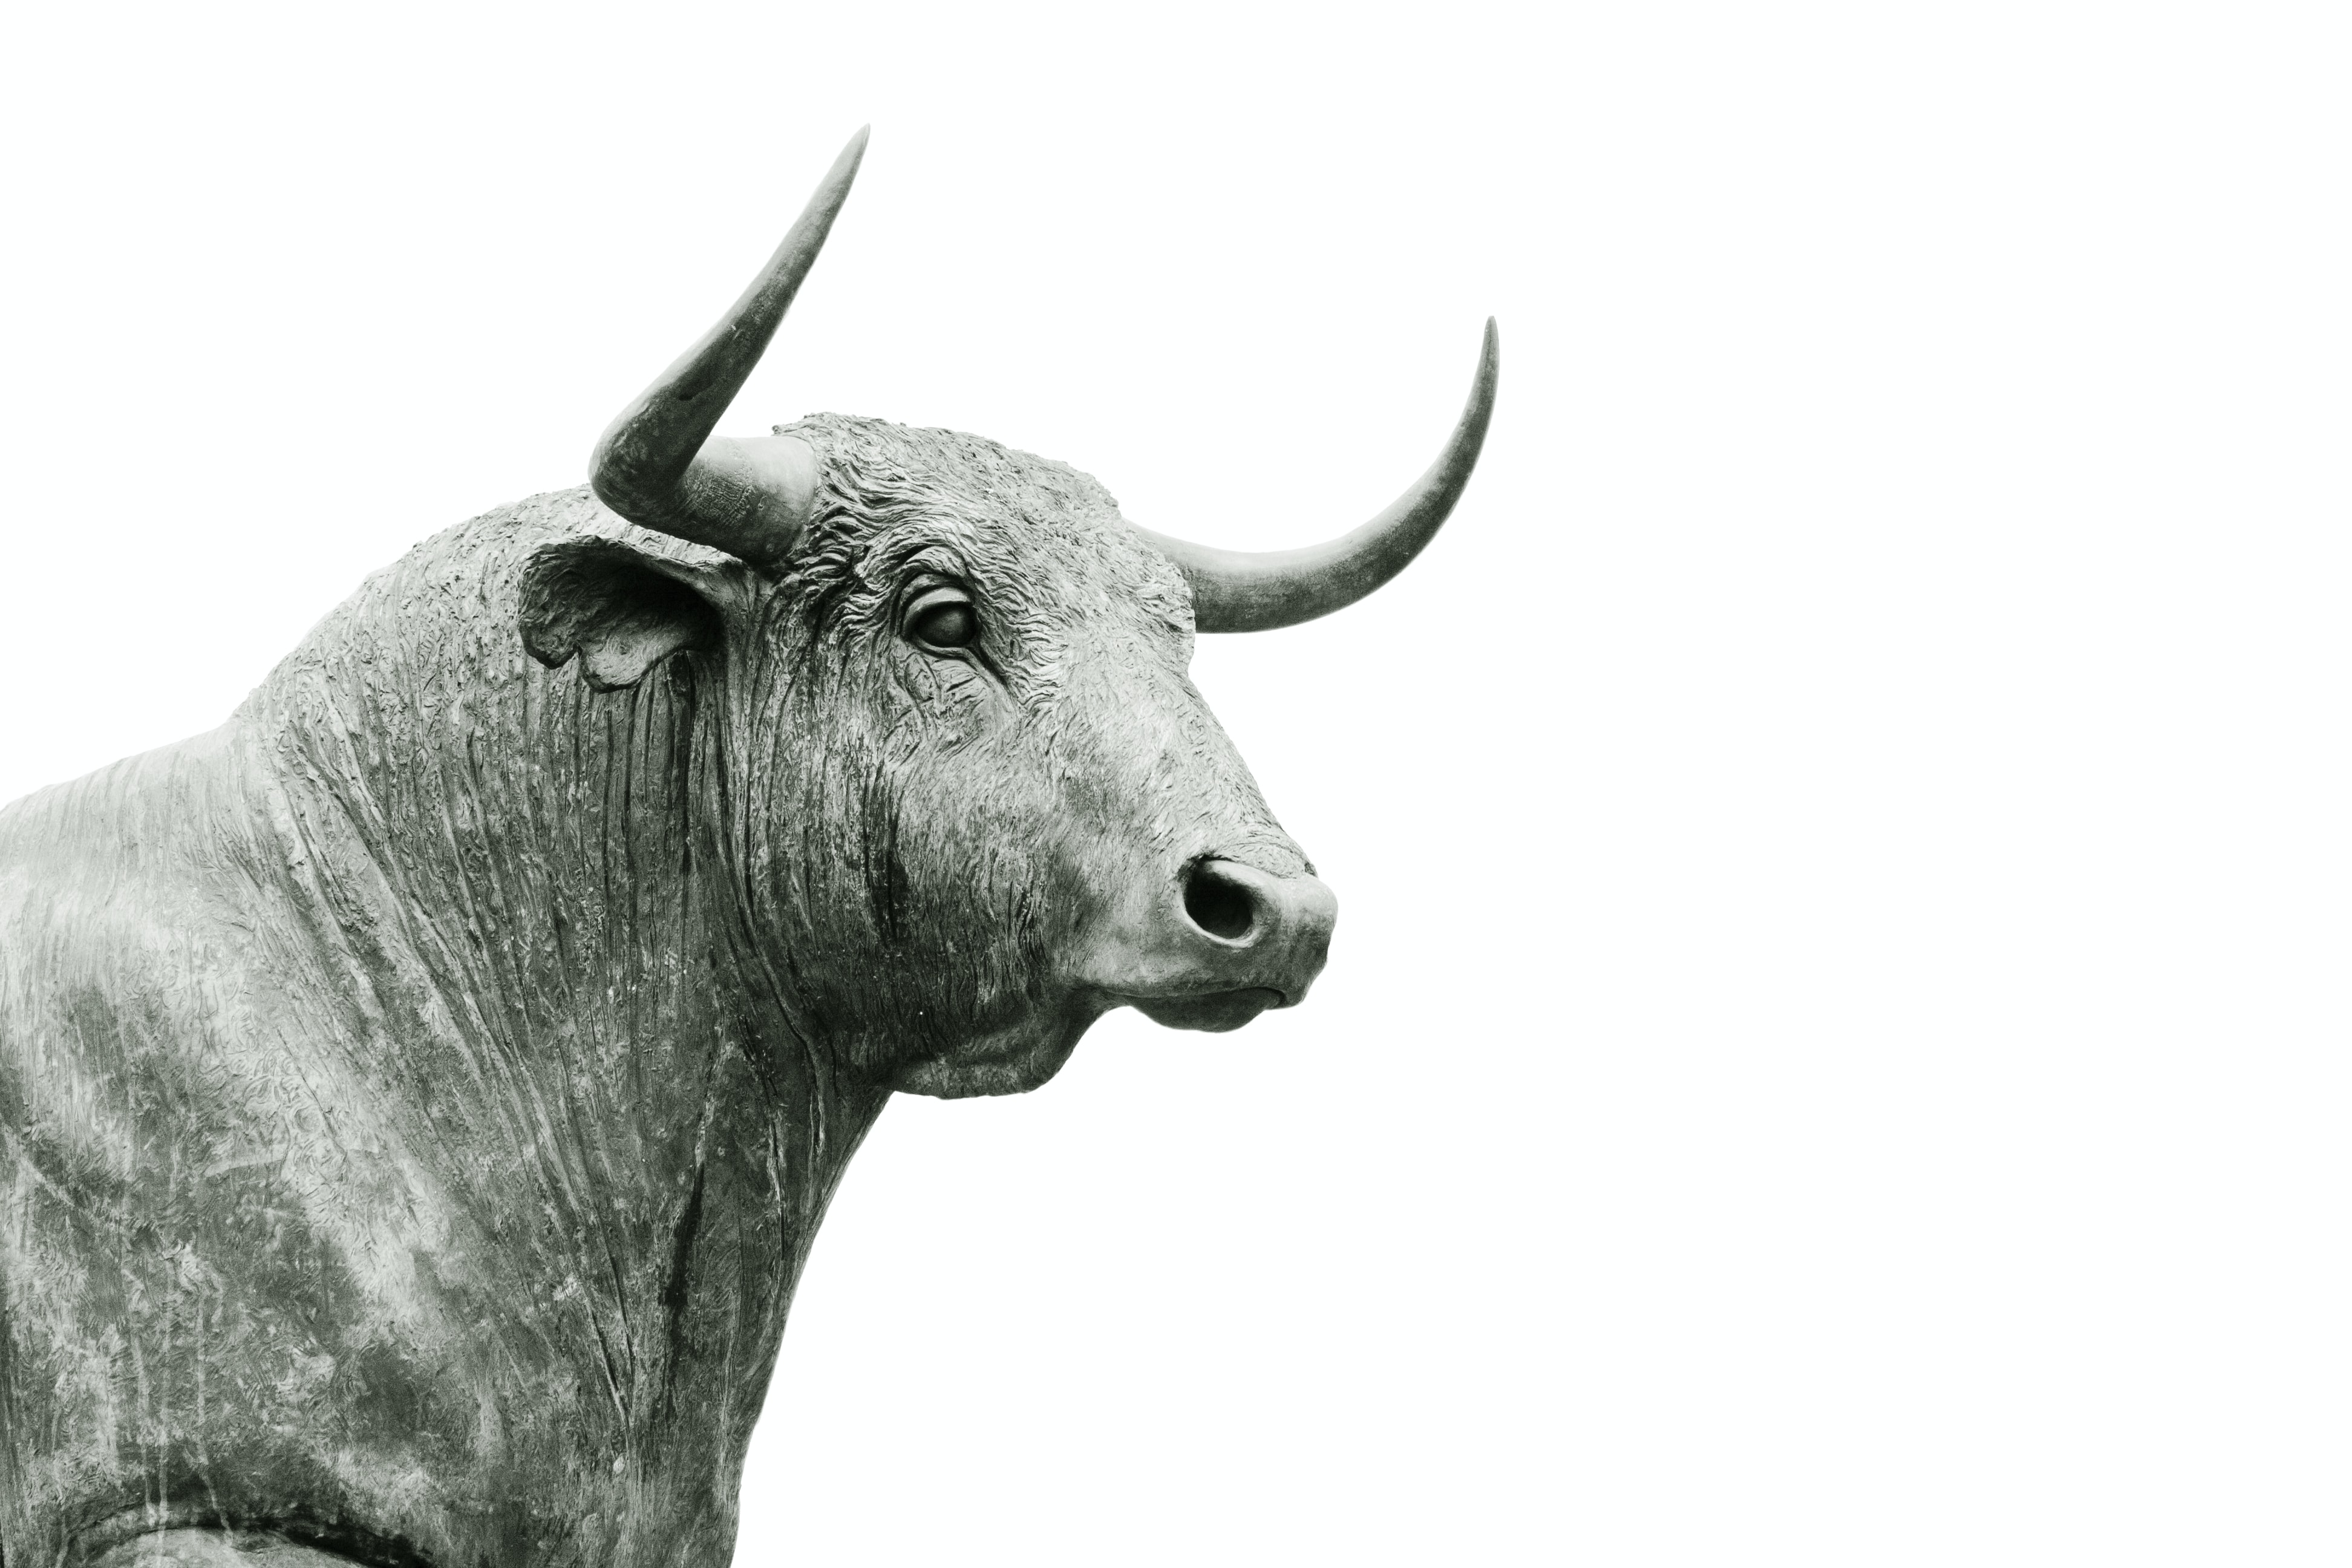 A statue of a bull against a white background